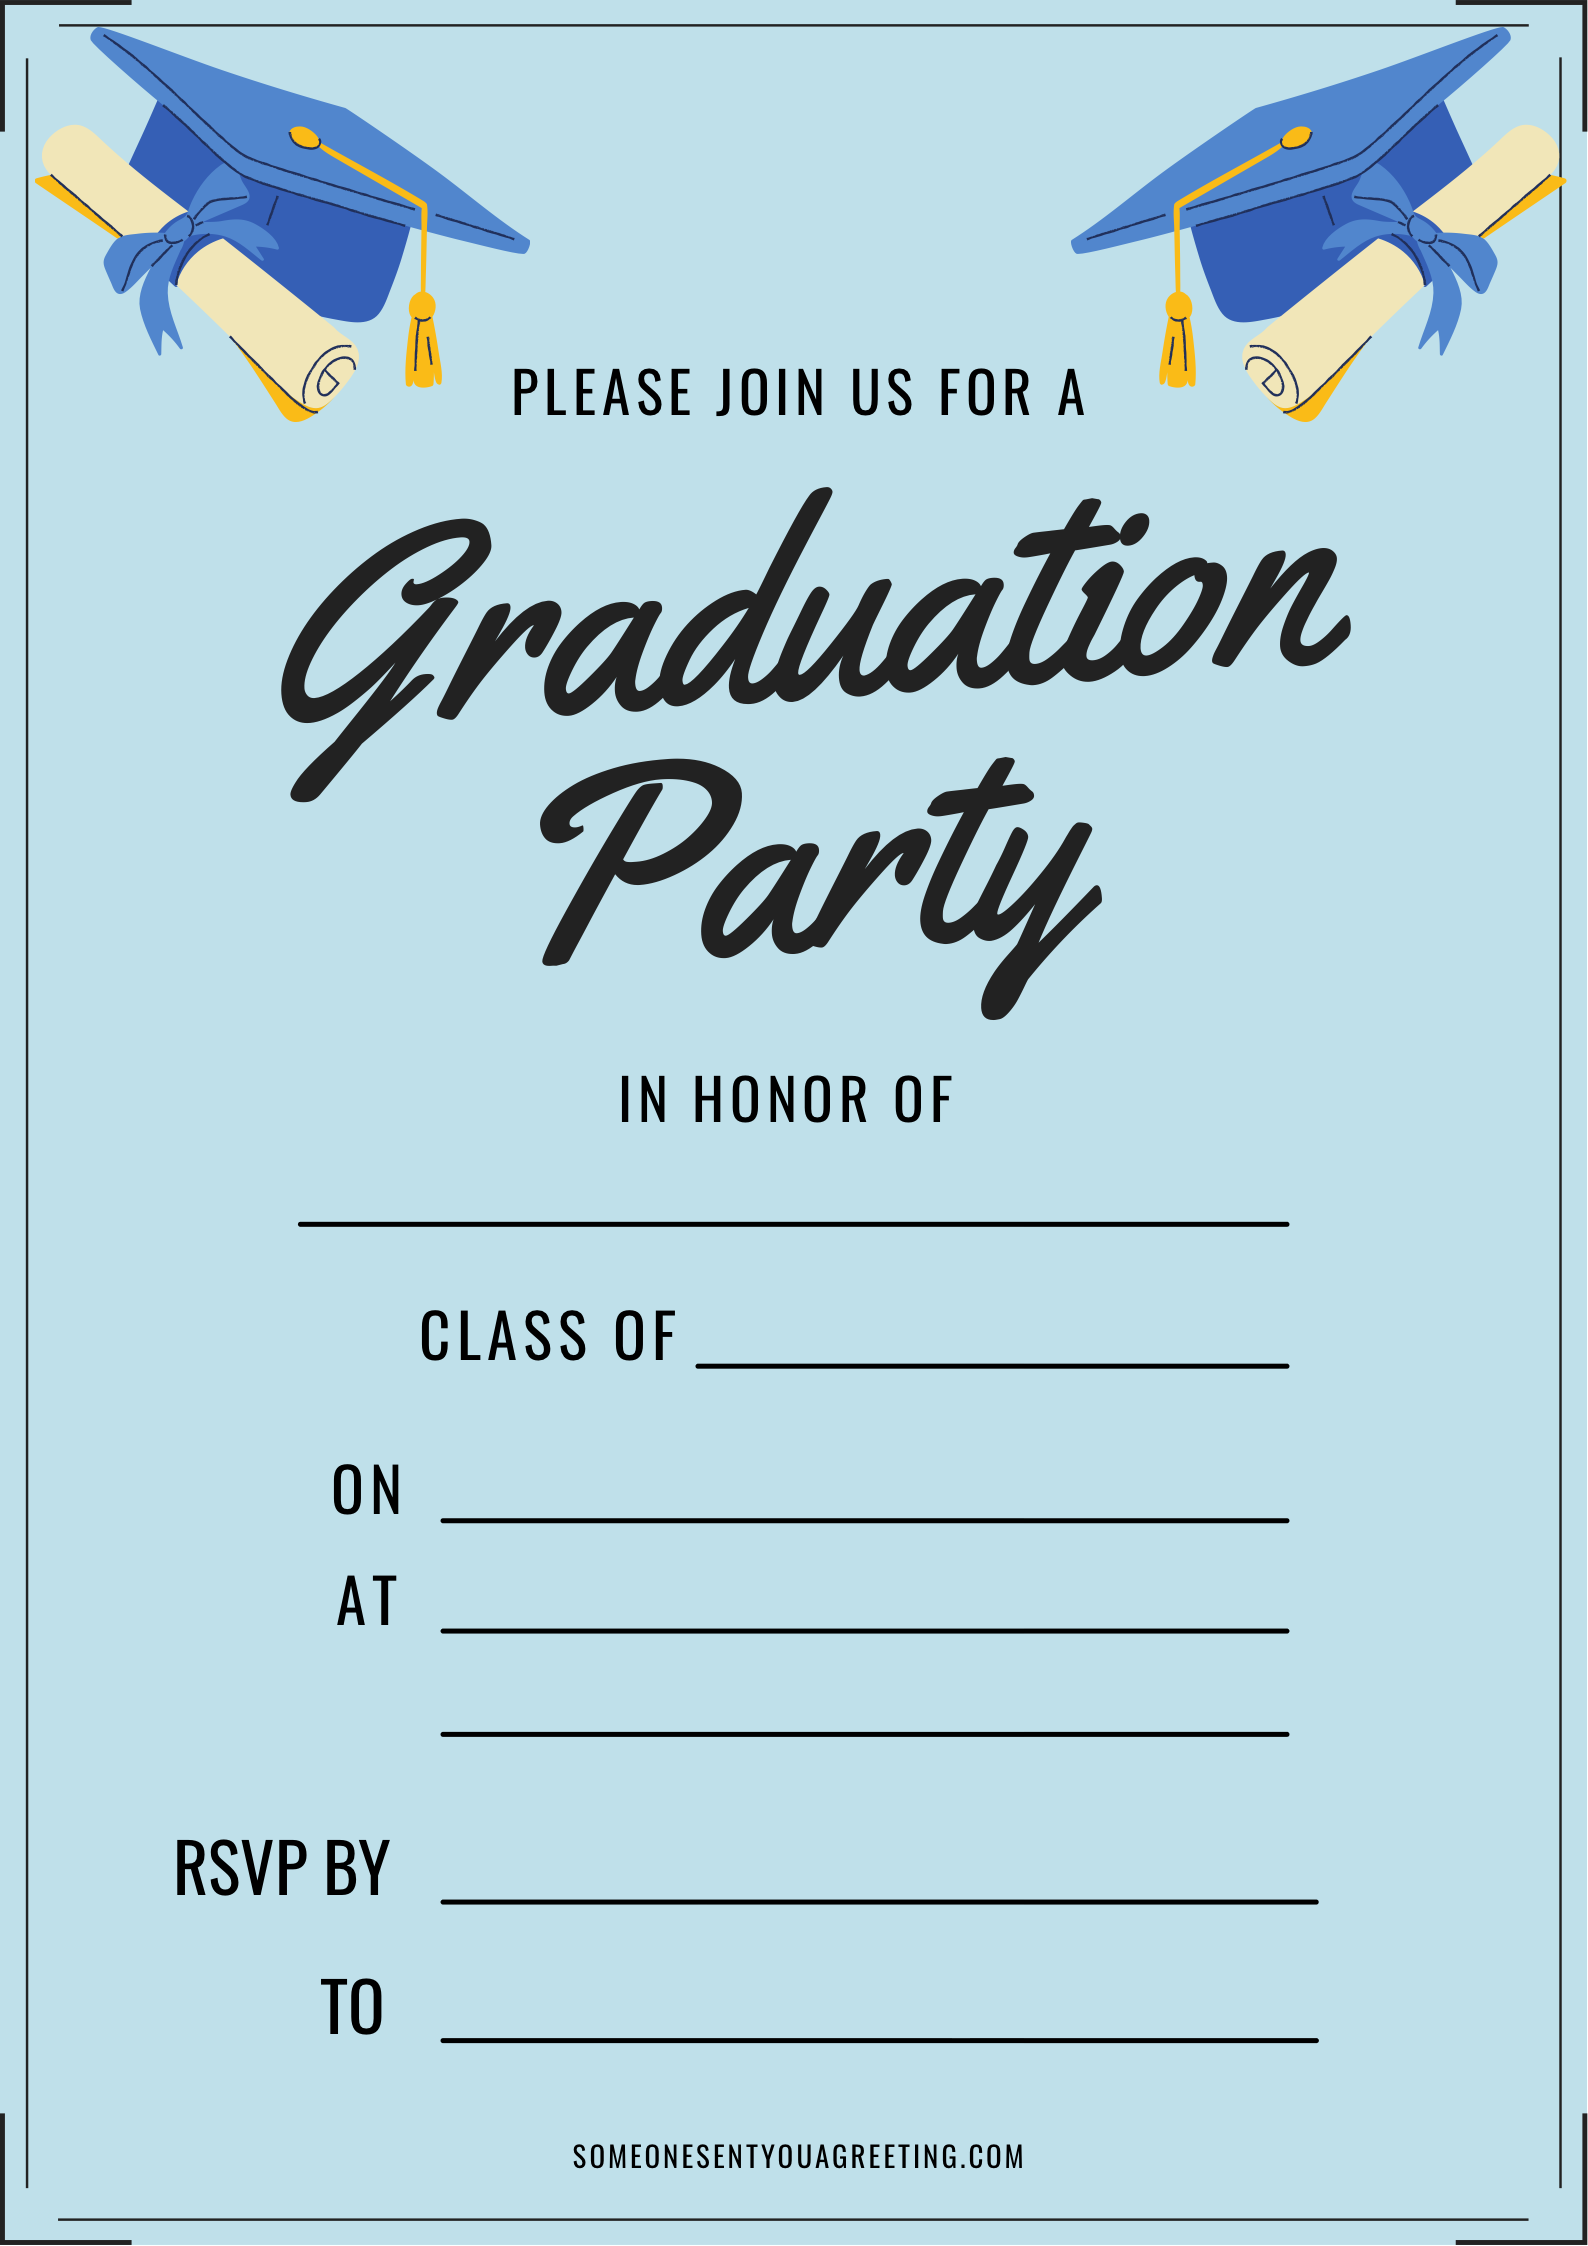 In honor of graduation party invitation printable template